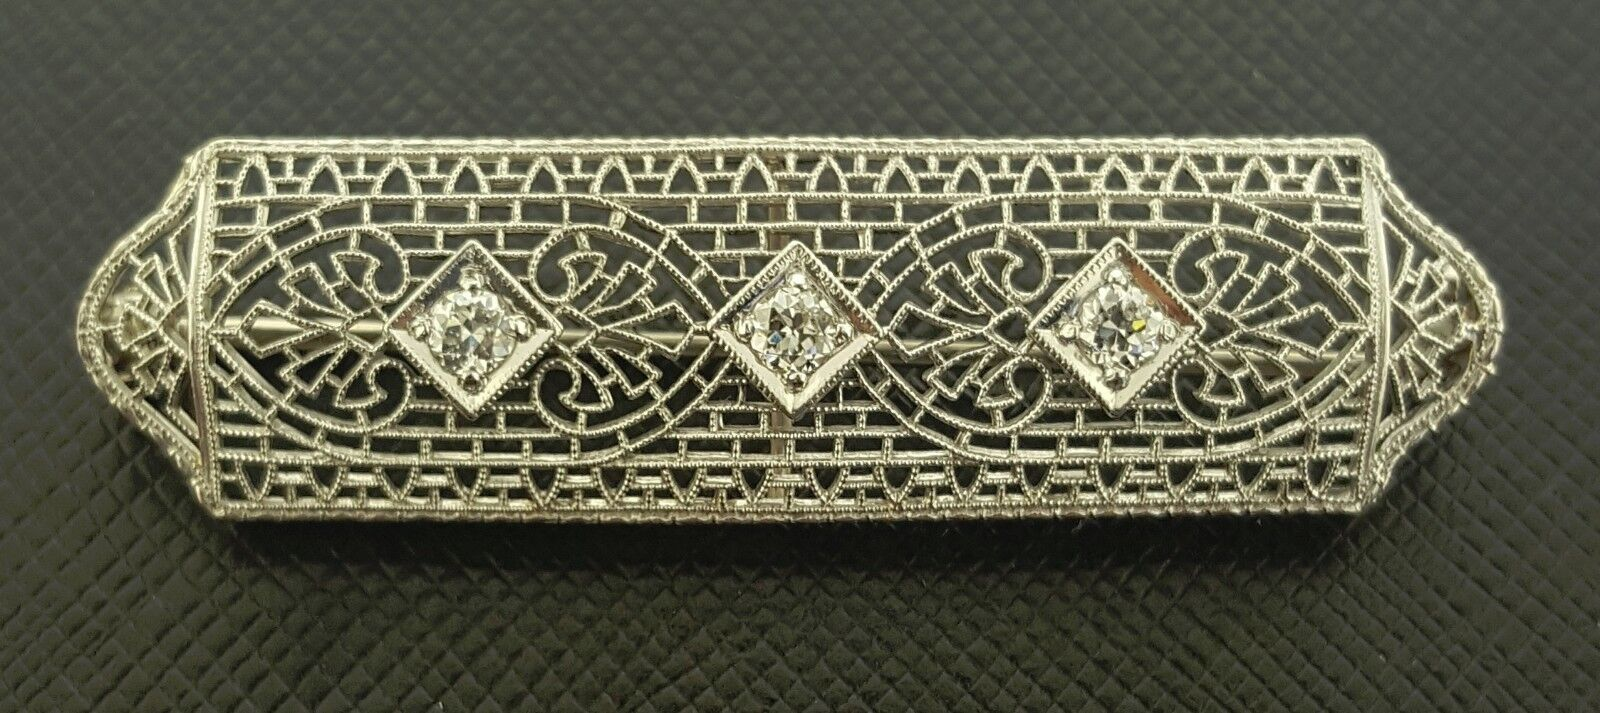 Antique Diamond Filigree Brooch Pin 14K White gold Vintage